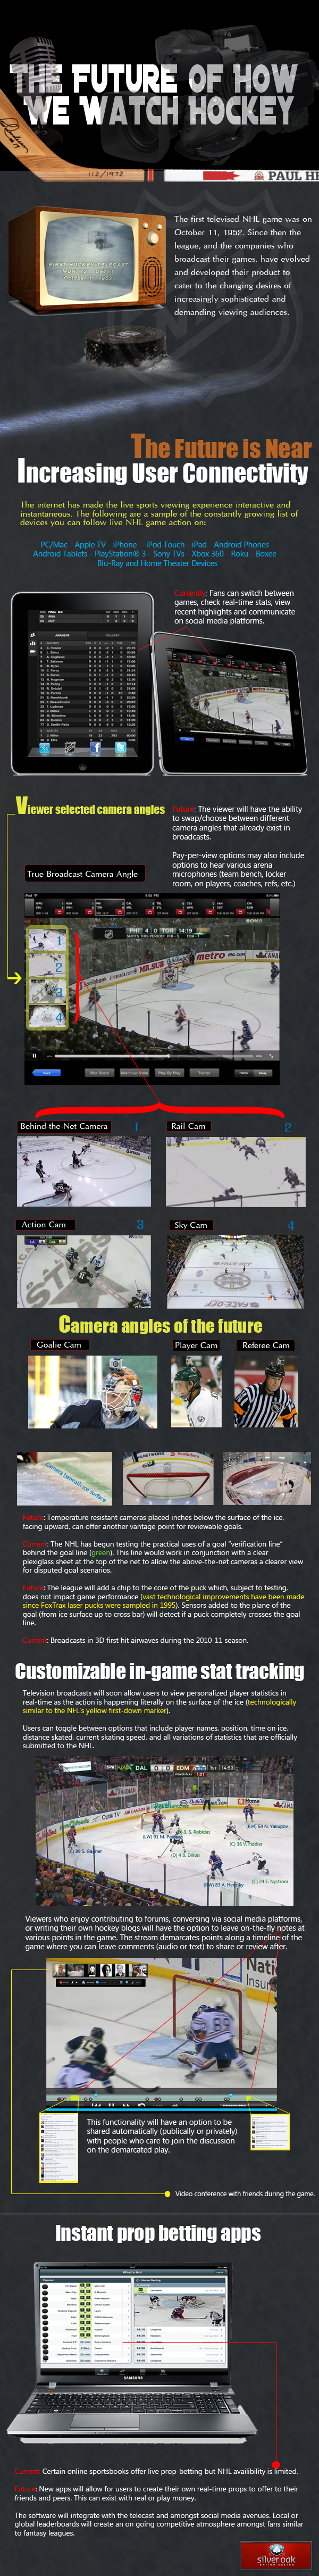 Alternative Ways to Watching Hockey